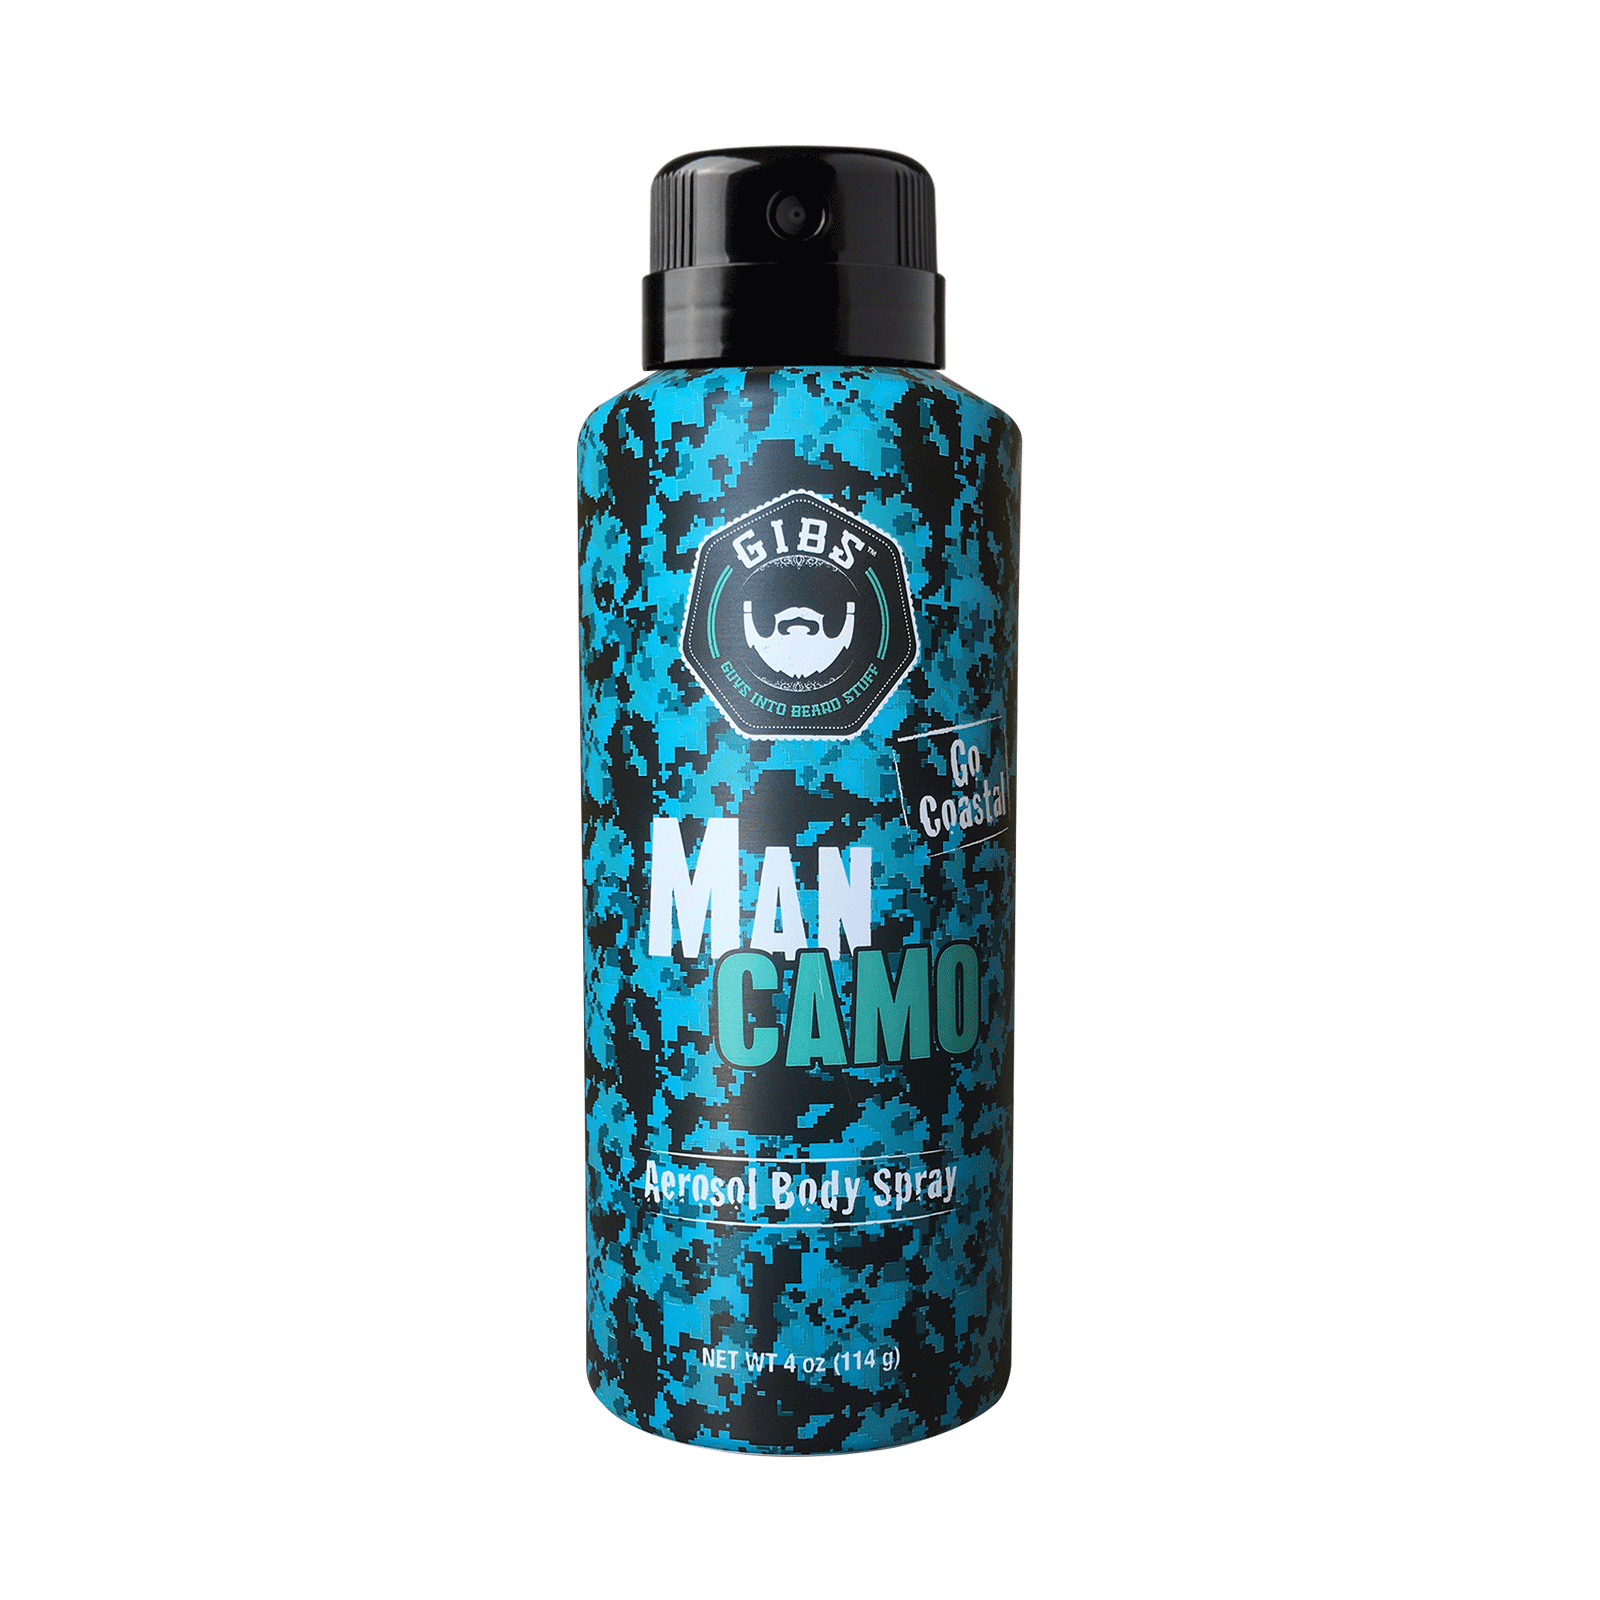 Man Camo Aerosol Body Spray